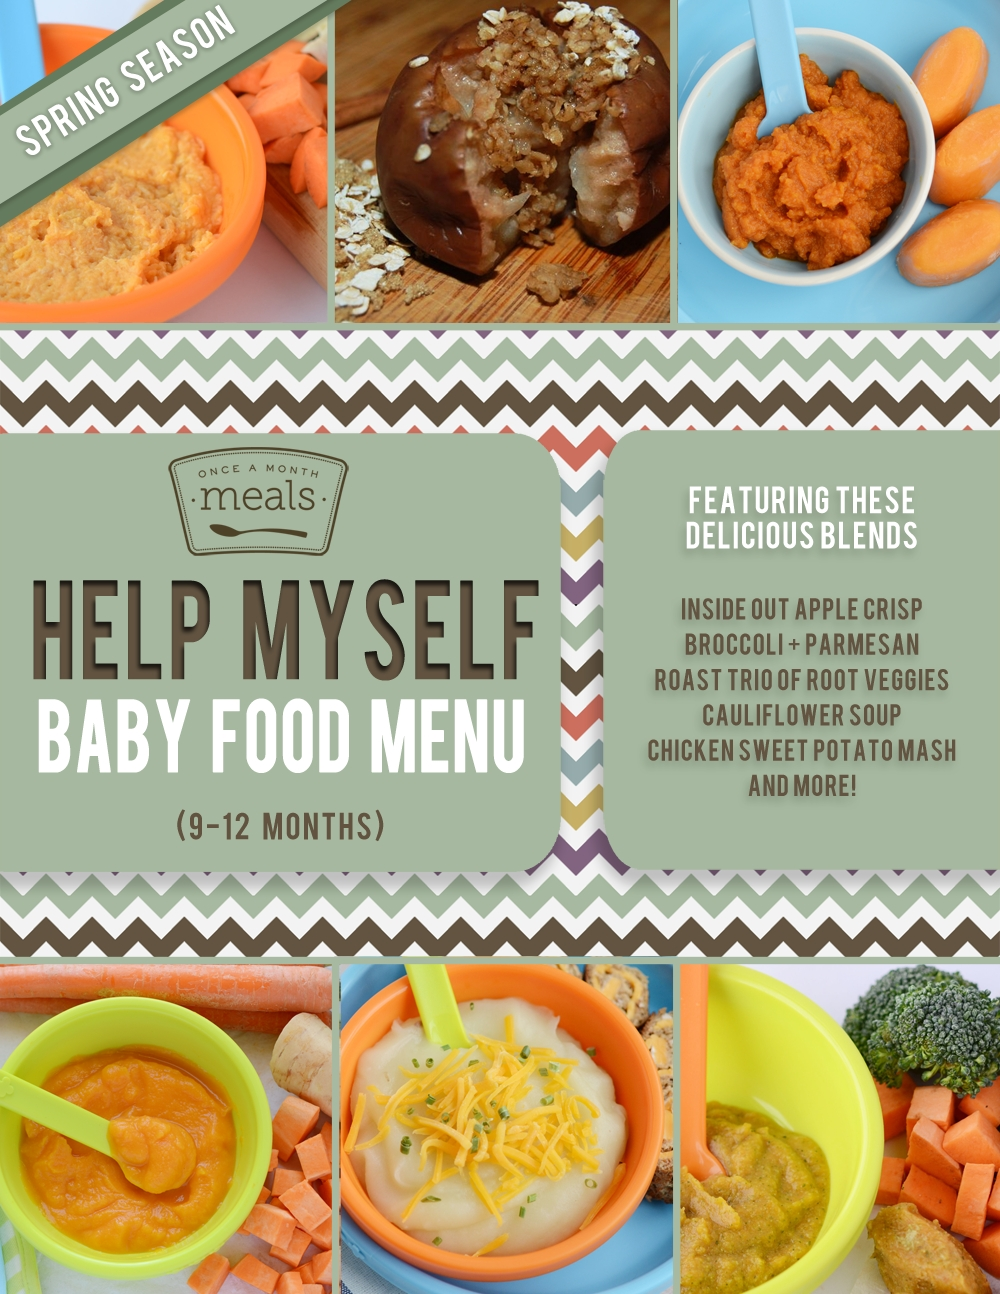 10 Nice Meal Ideas For 12 Month Old baby food 9 12 months spring menu once a month meals 1 2020